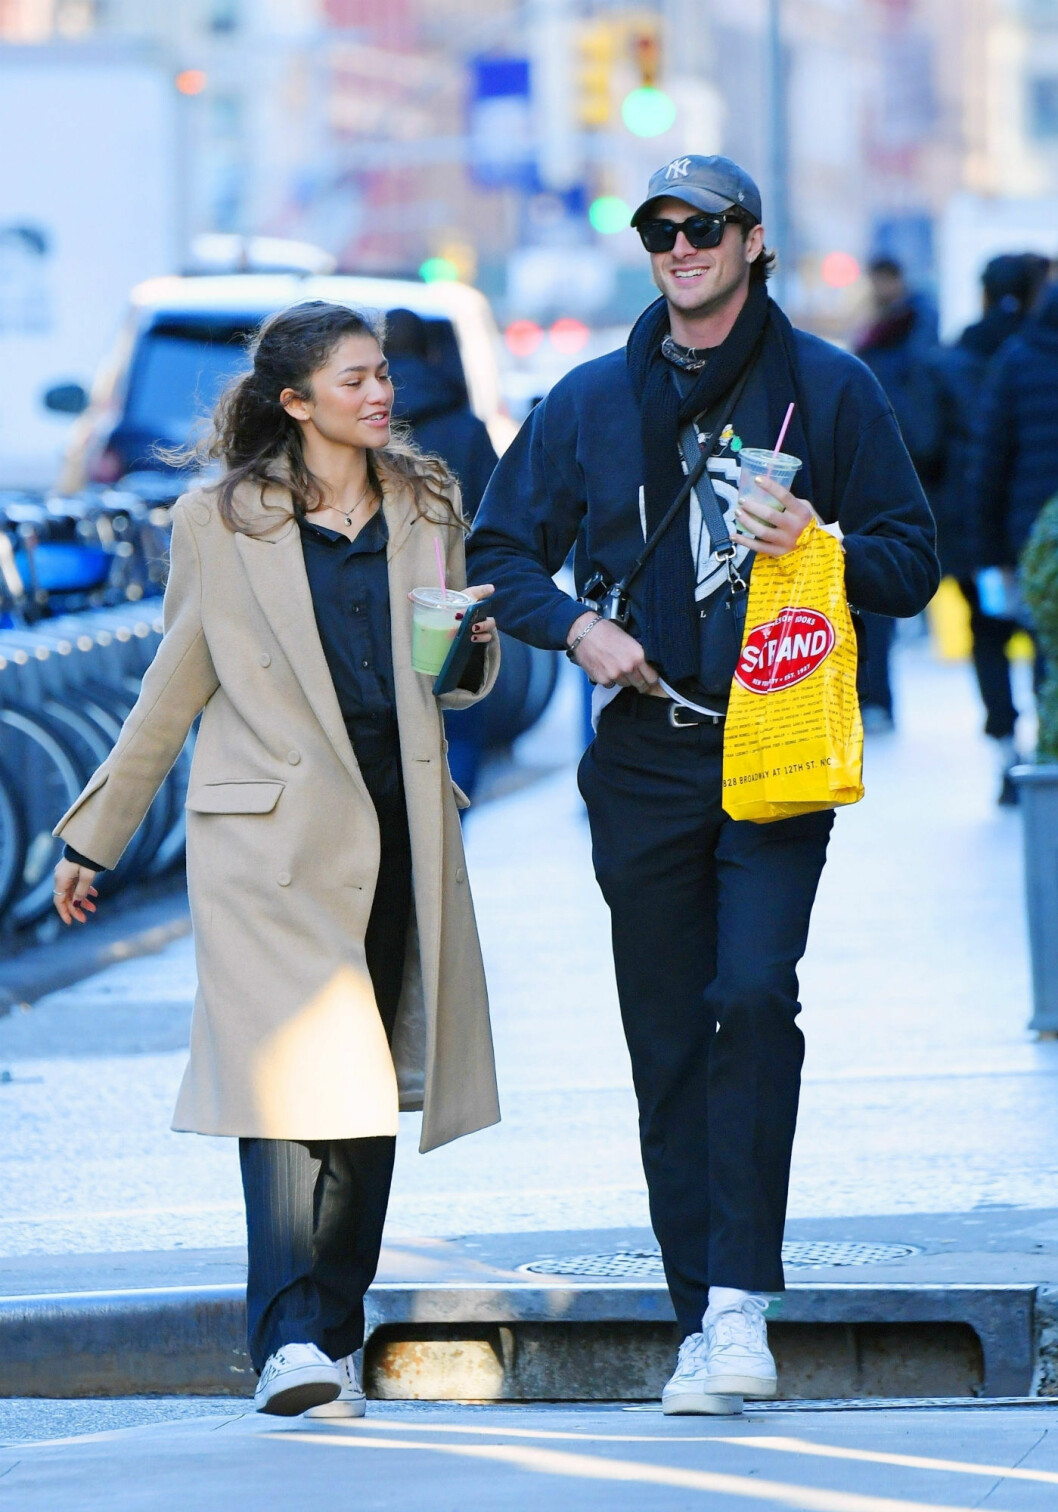 Zendaya och Jacob Elordi syntes i New York.